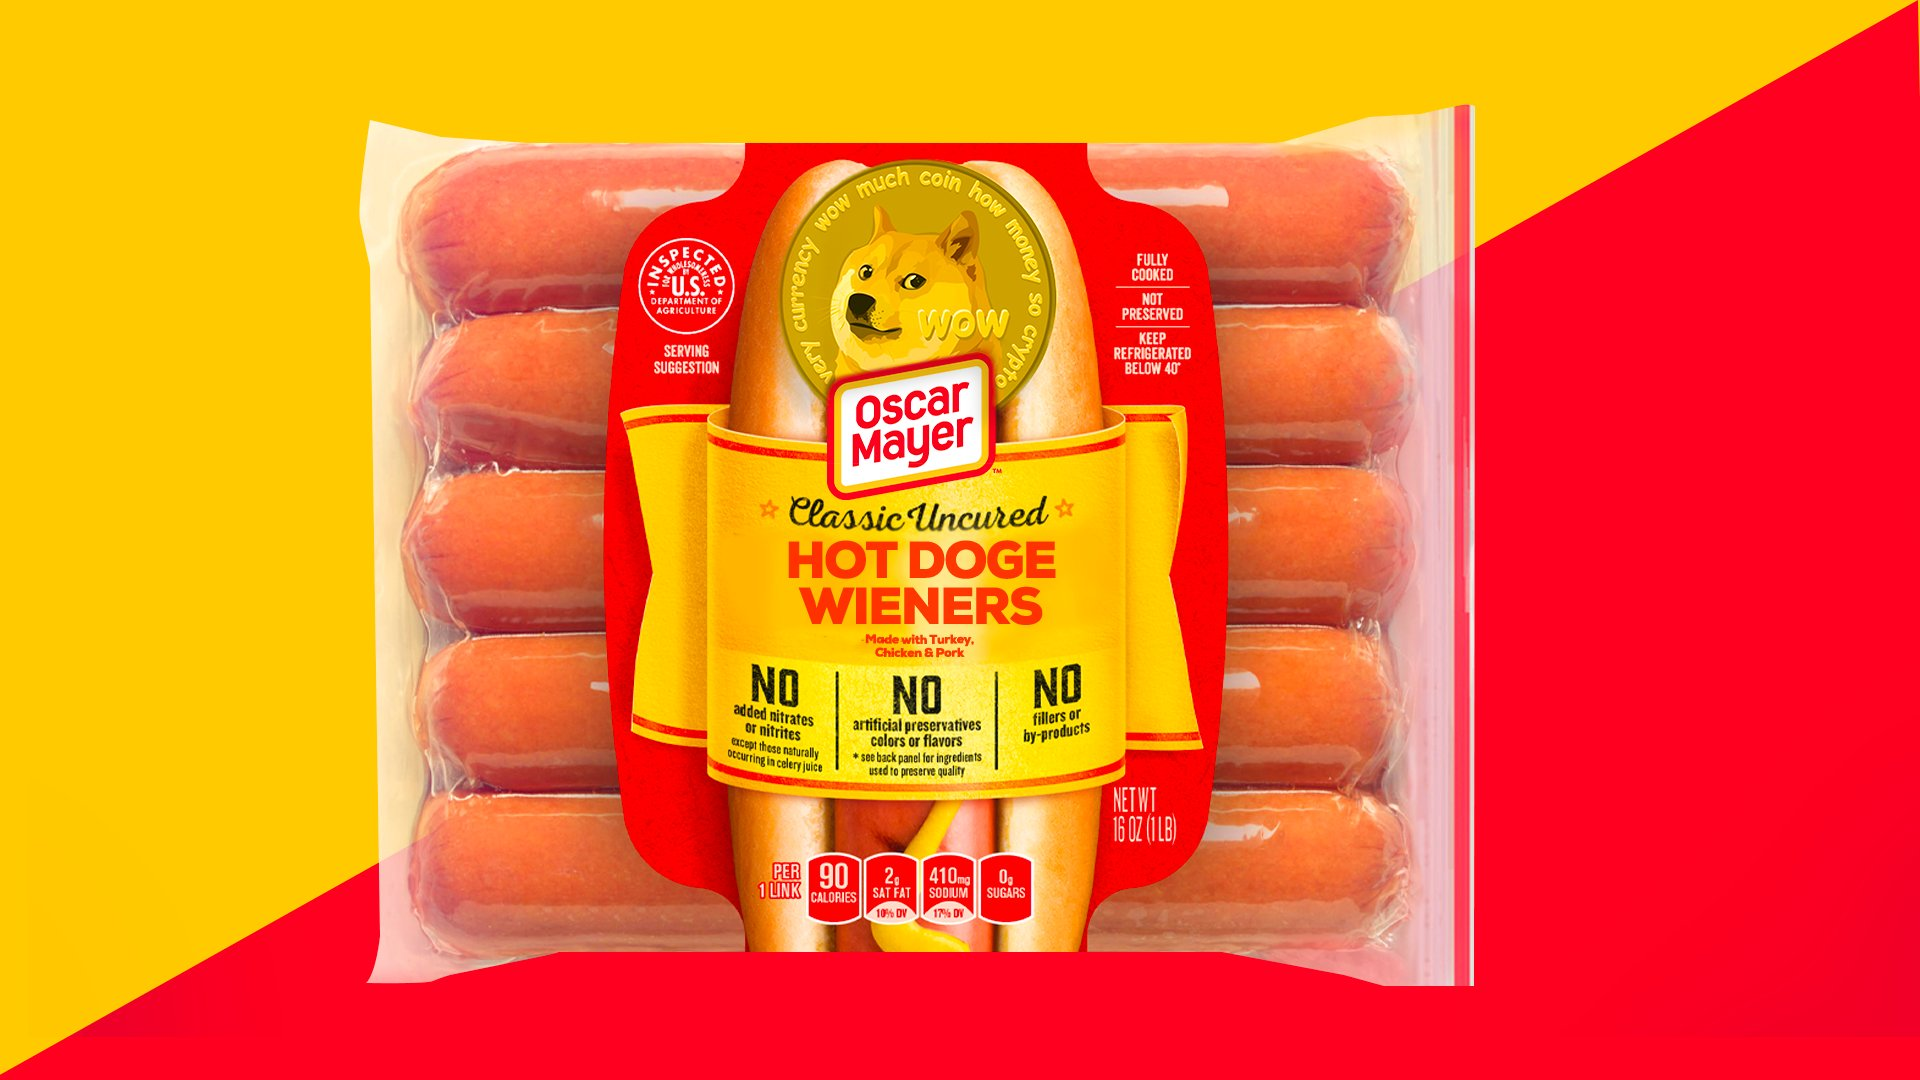 Much Wow on a Bun! Oscar Mayer's Hot Doge Wieners Auction Closes at $15K